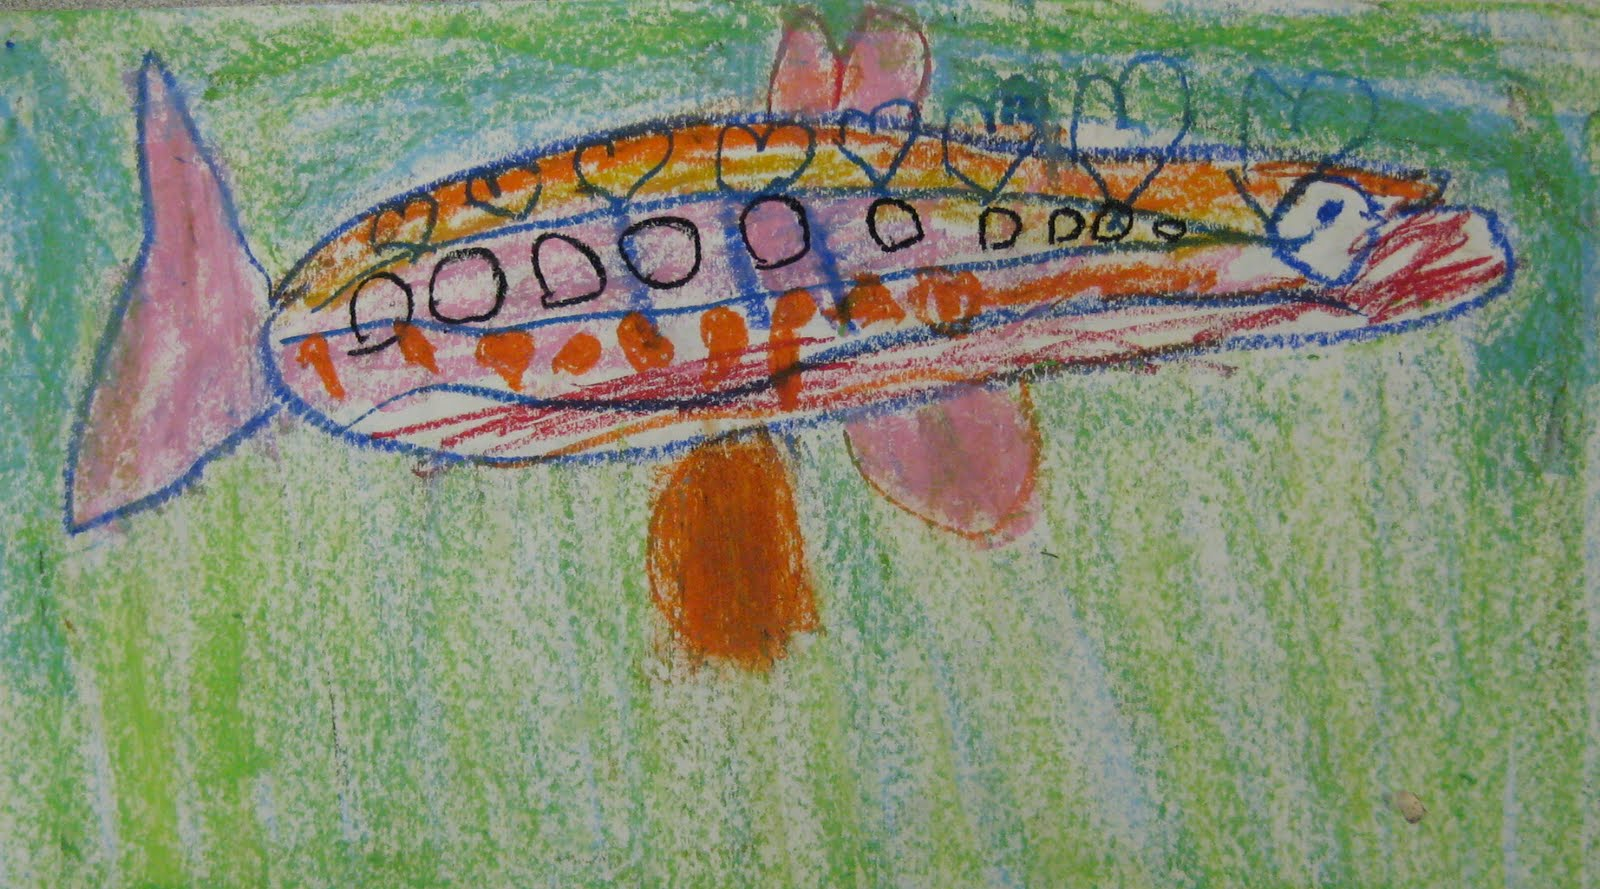 Using Lines In Drawing : Drawing fish with lines and shapes u2022 teachkidsart